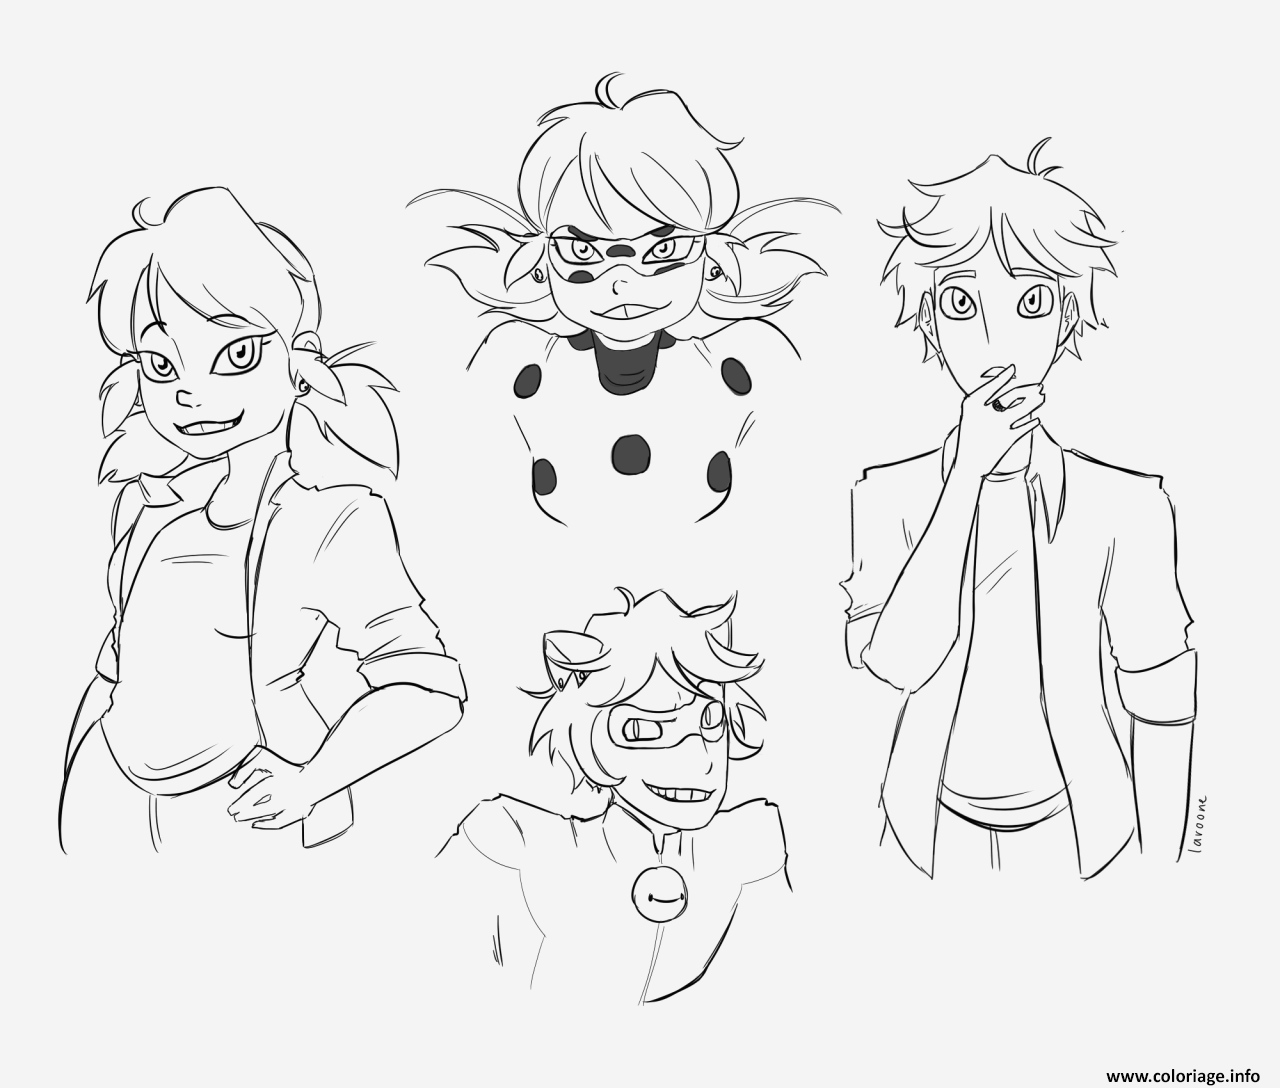 Coloriage Ladybug Miraculous Awesome Coloriage Personnages Demiraculous Ladybug Chat Noir Of Coloriage Ladybug Miraculous